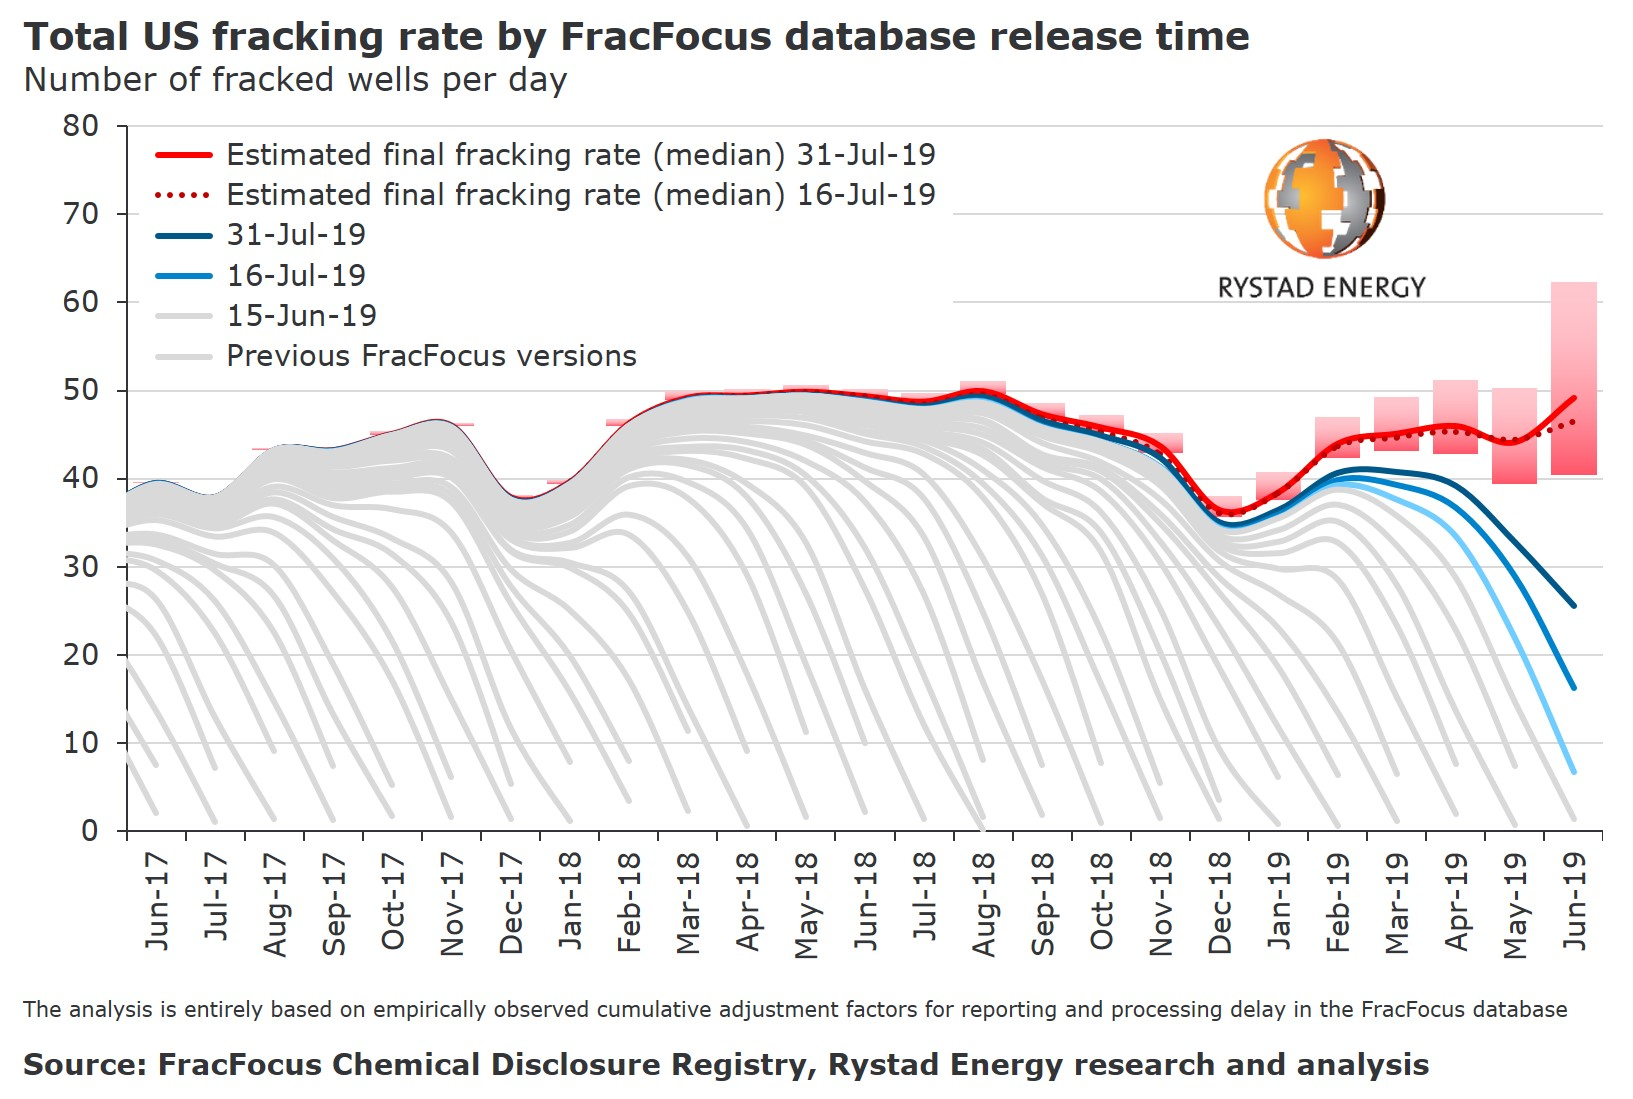 20190806_PR Charts total US fracking rate by fracfocus database release time.jpg